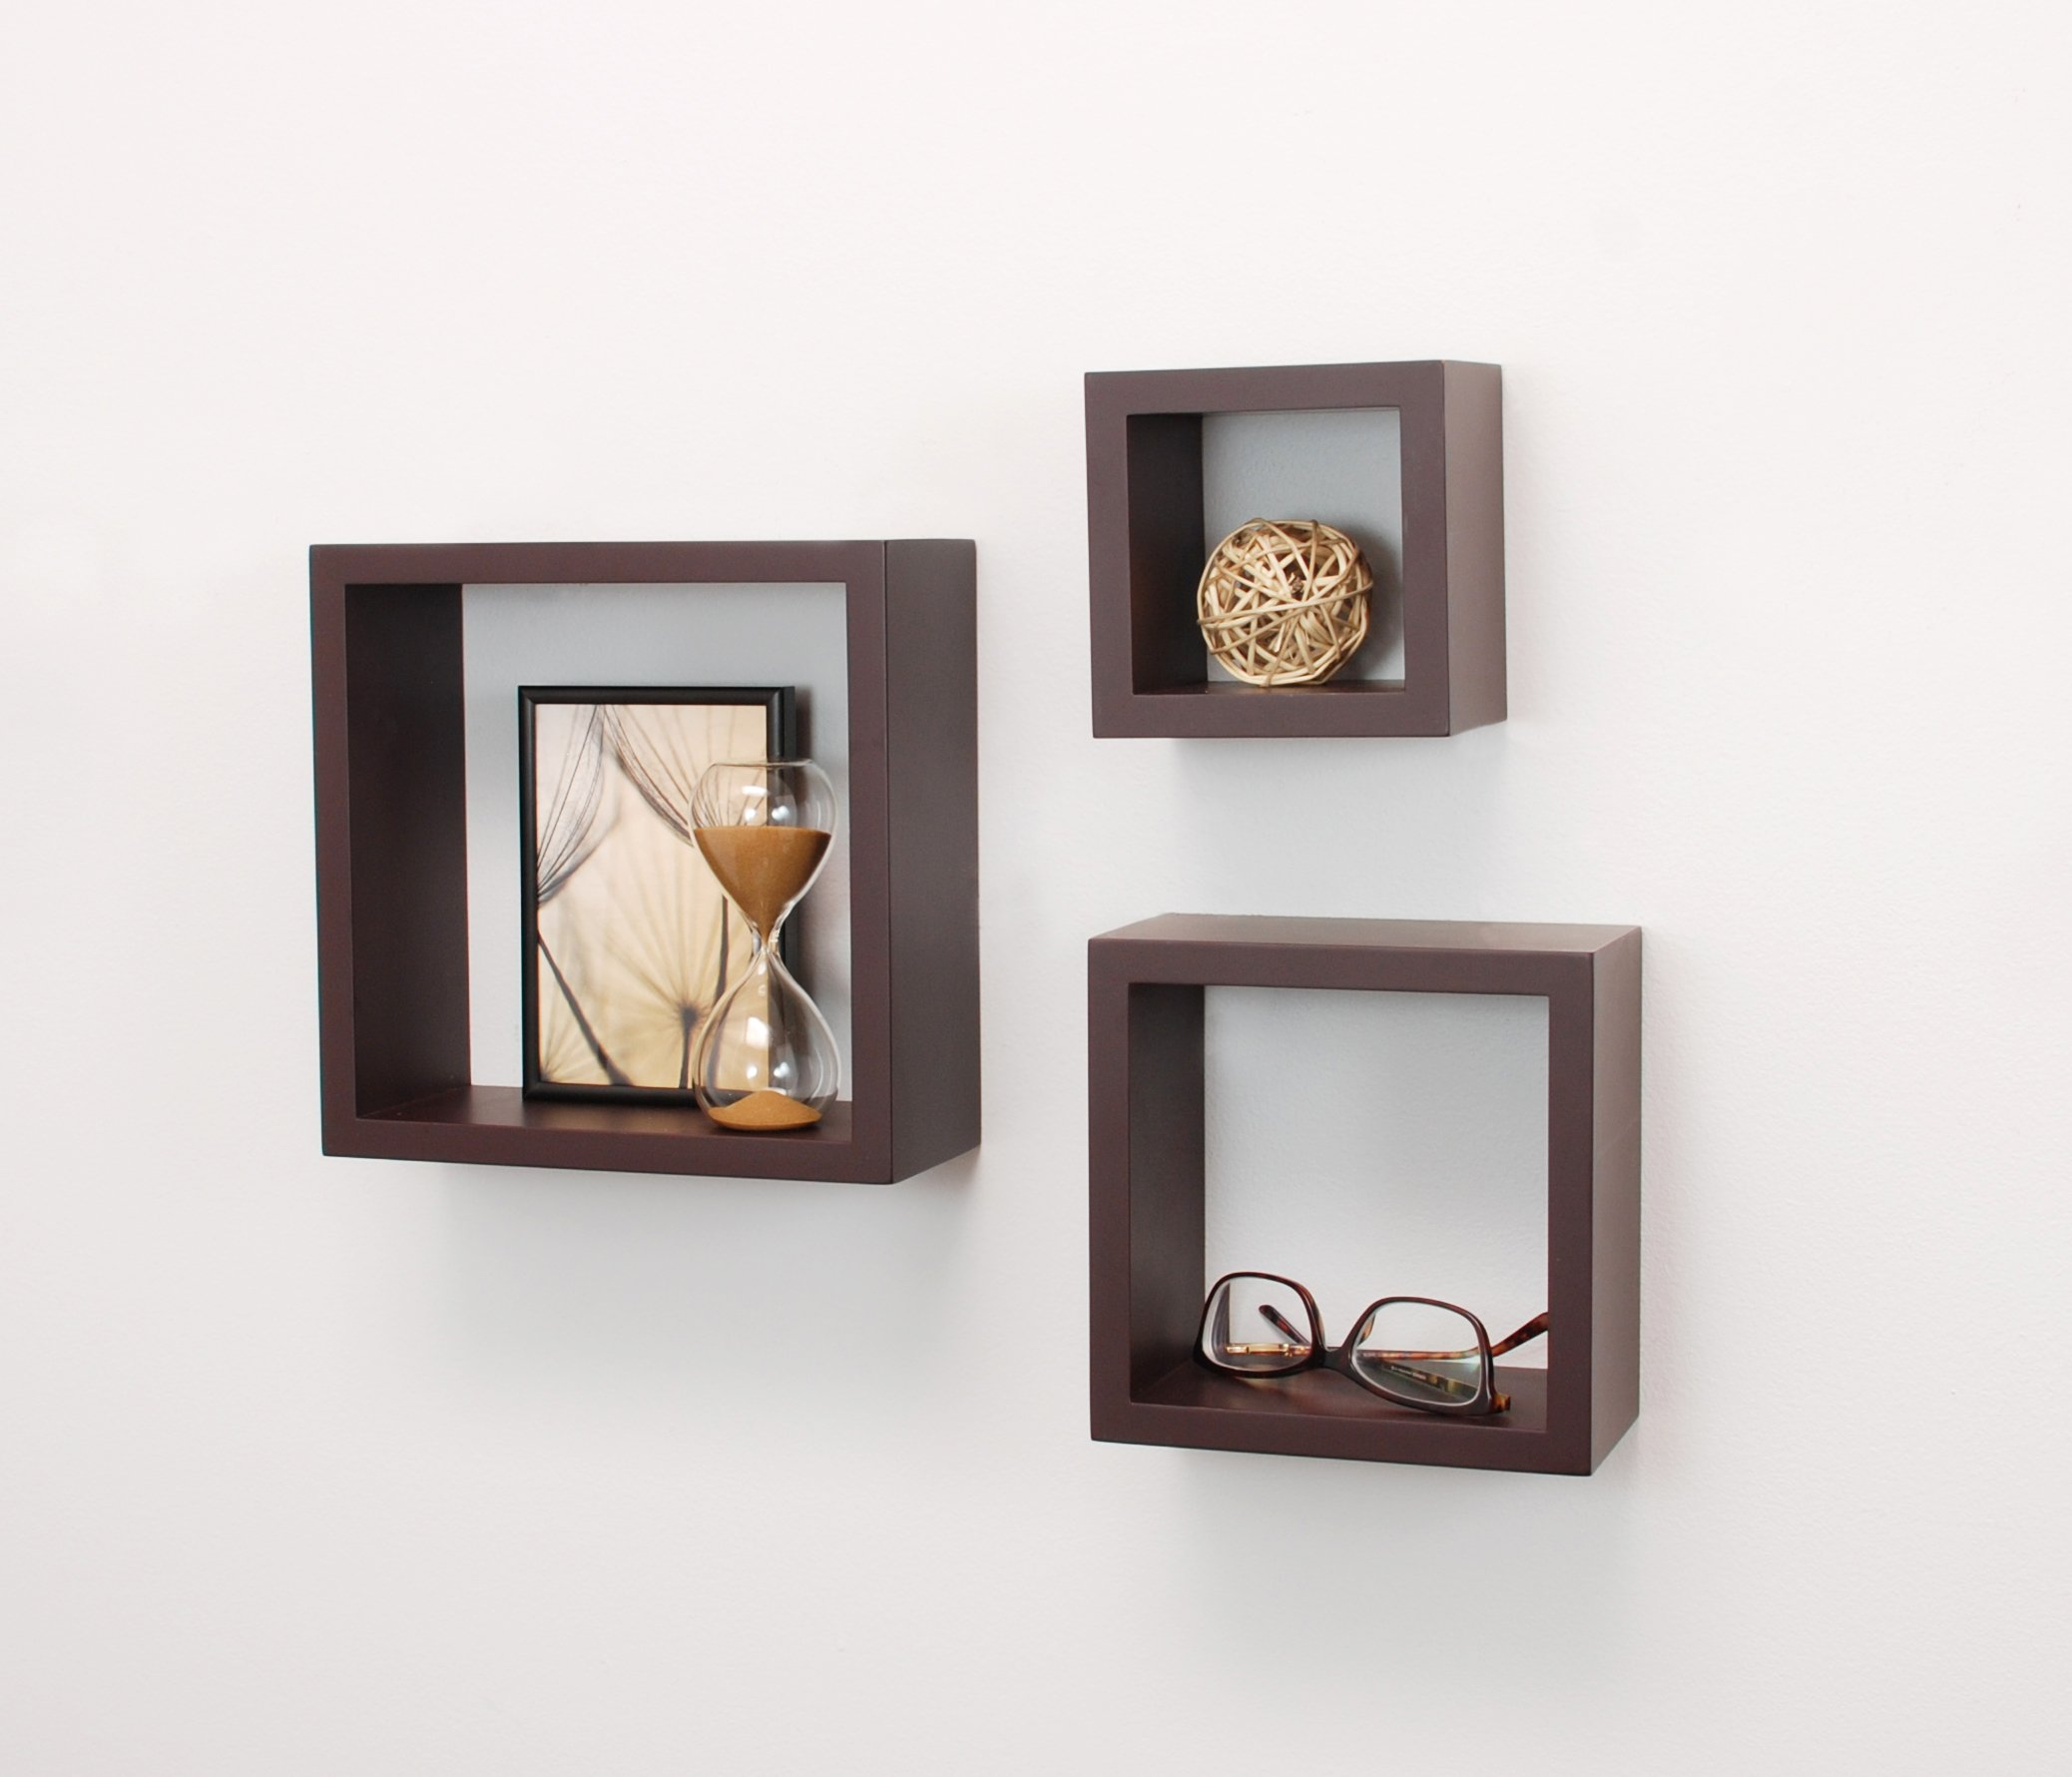 "kieragrace Cubbi Floating Wall Shelves, 5"" x 5"", 7"" x 7"", 9"" x 9"", Espresso, Set of 3 - 3-piece wall-mounted shelf set offers a clean, contemporary display style MDF construction in three sizes: small, medium, and large Small: 5x5x4"", Medium: 7x7x4"", Large: 9x9x4"" - wall-shelves, living-room-furniture, living-room - 71SpBfBSJxL -"